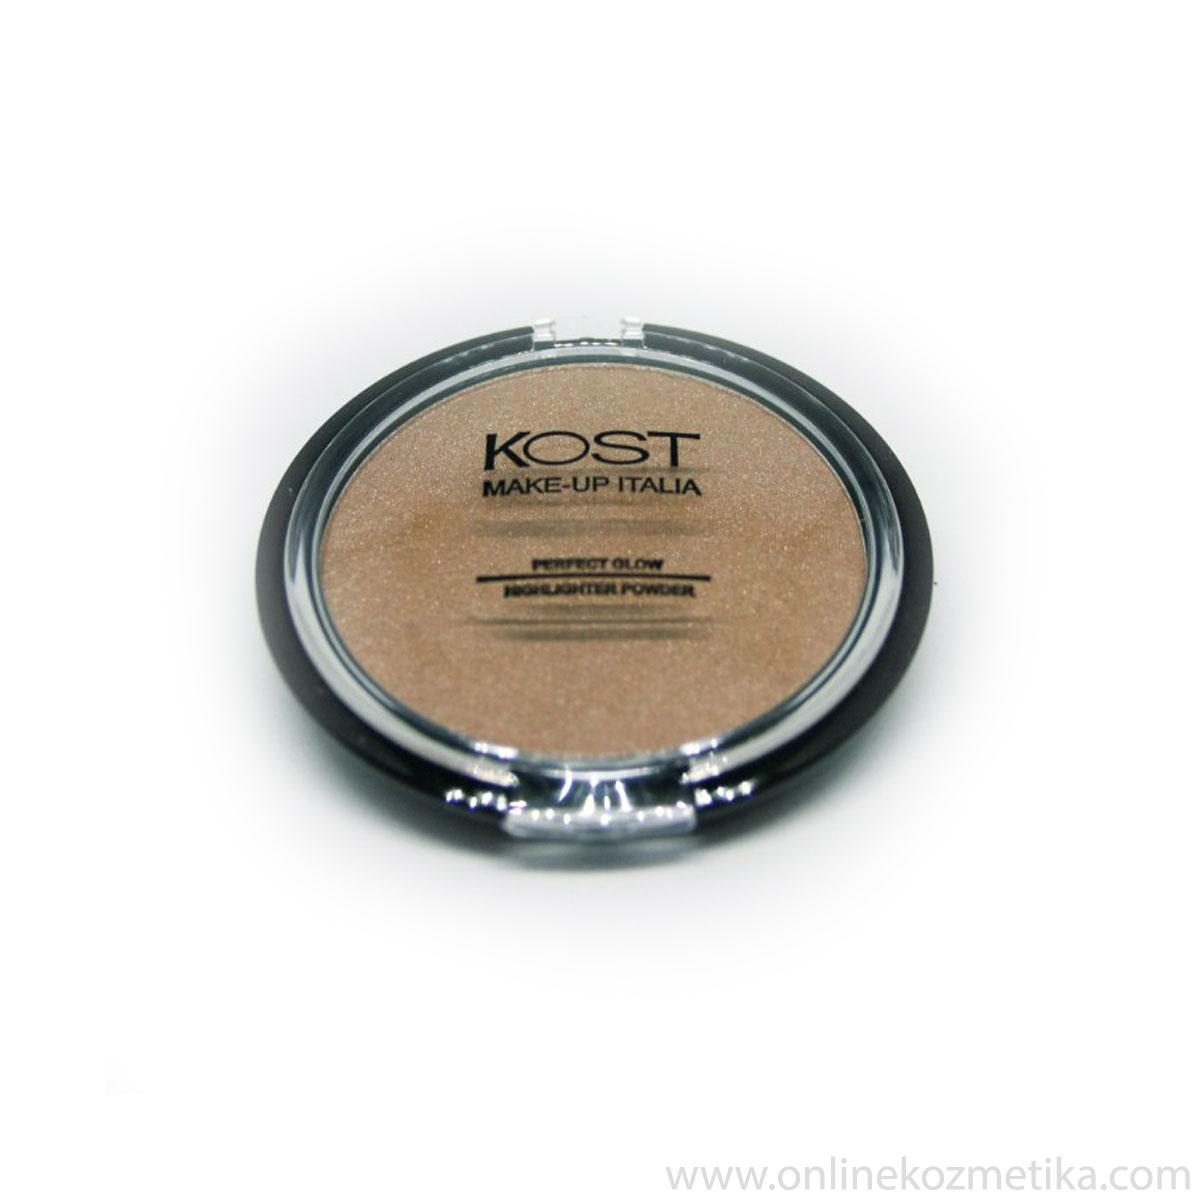 KOST PERFECT GLOW HIGHLIGHTER 02